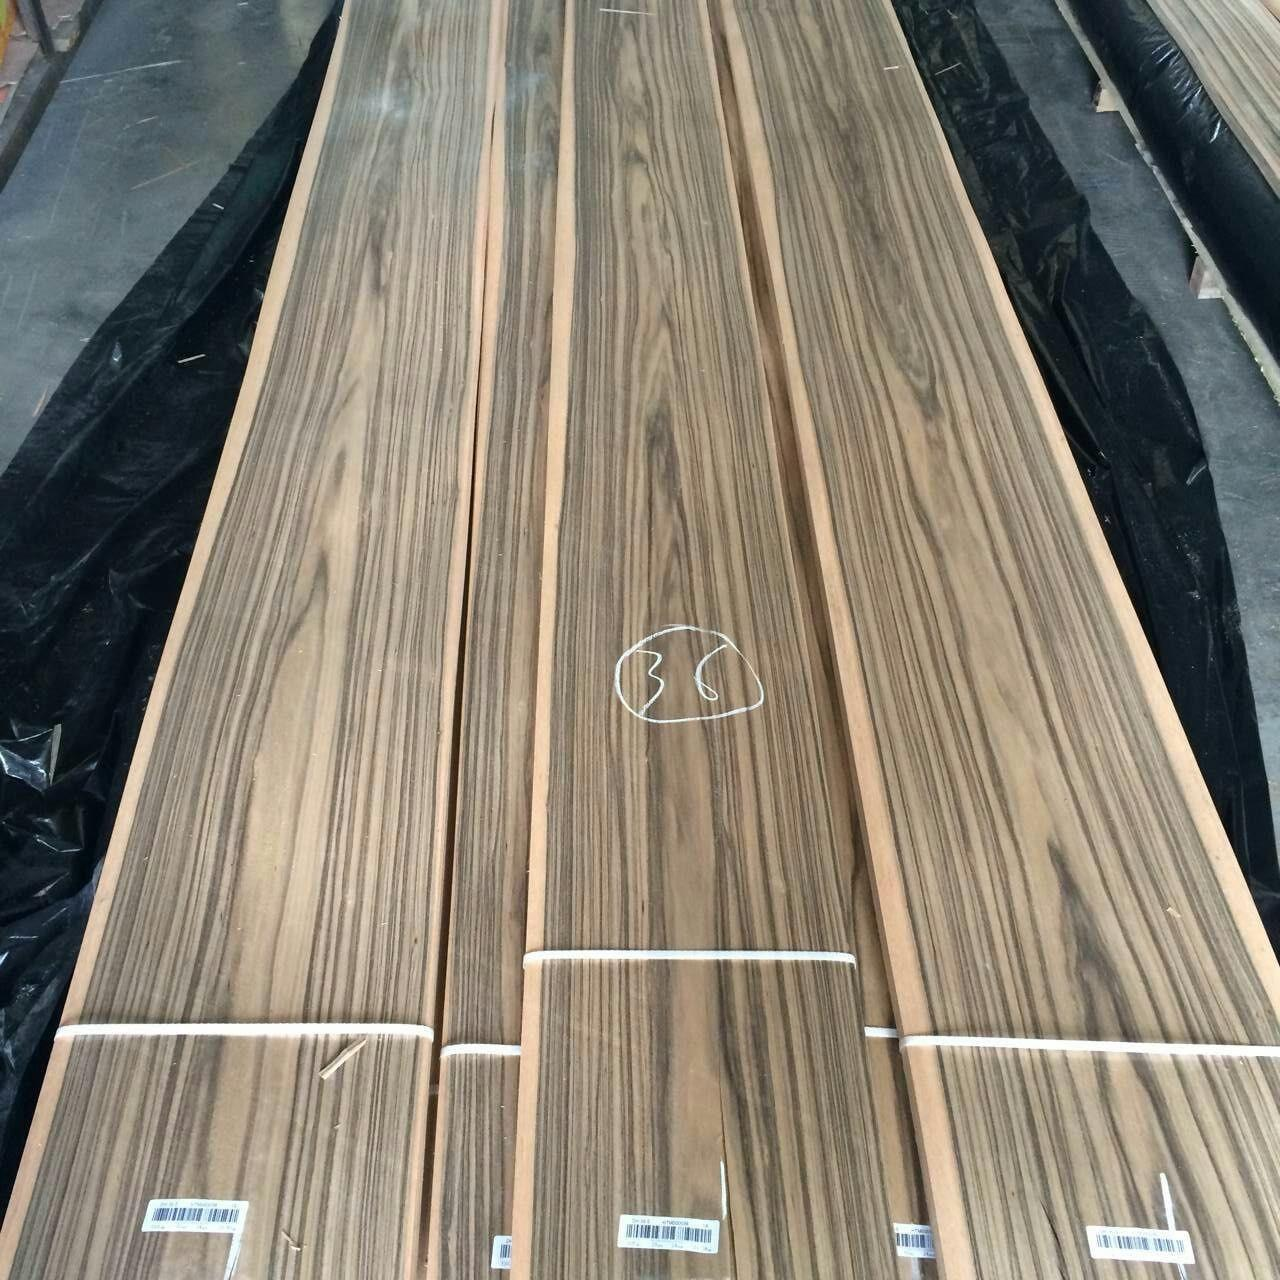 Crown Paldao Natural Wood Veneer Full 0.52mm Thick Paldao Veneer for Furniture Doors and Architectural Panel Manufactures